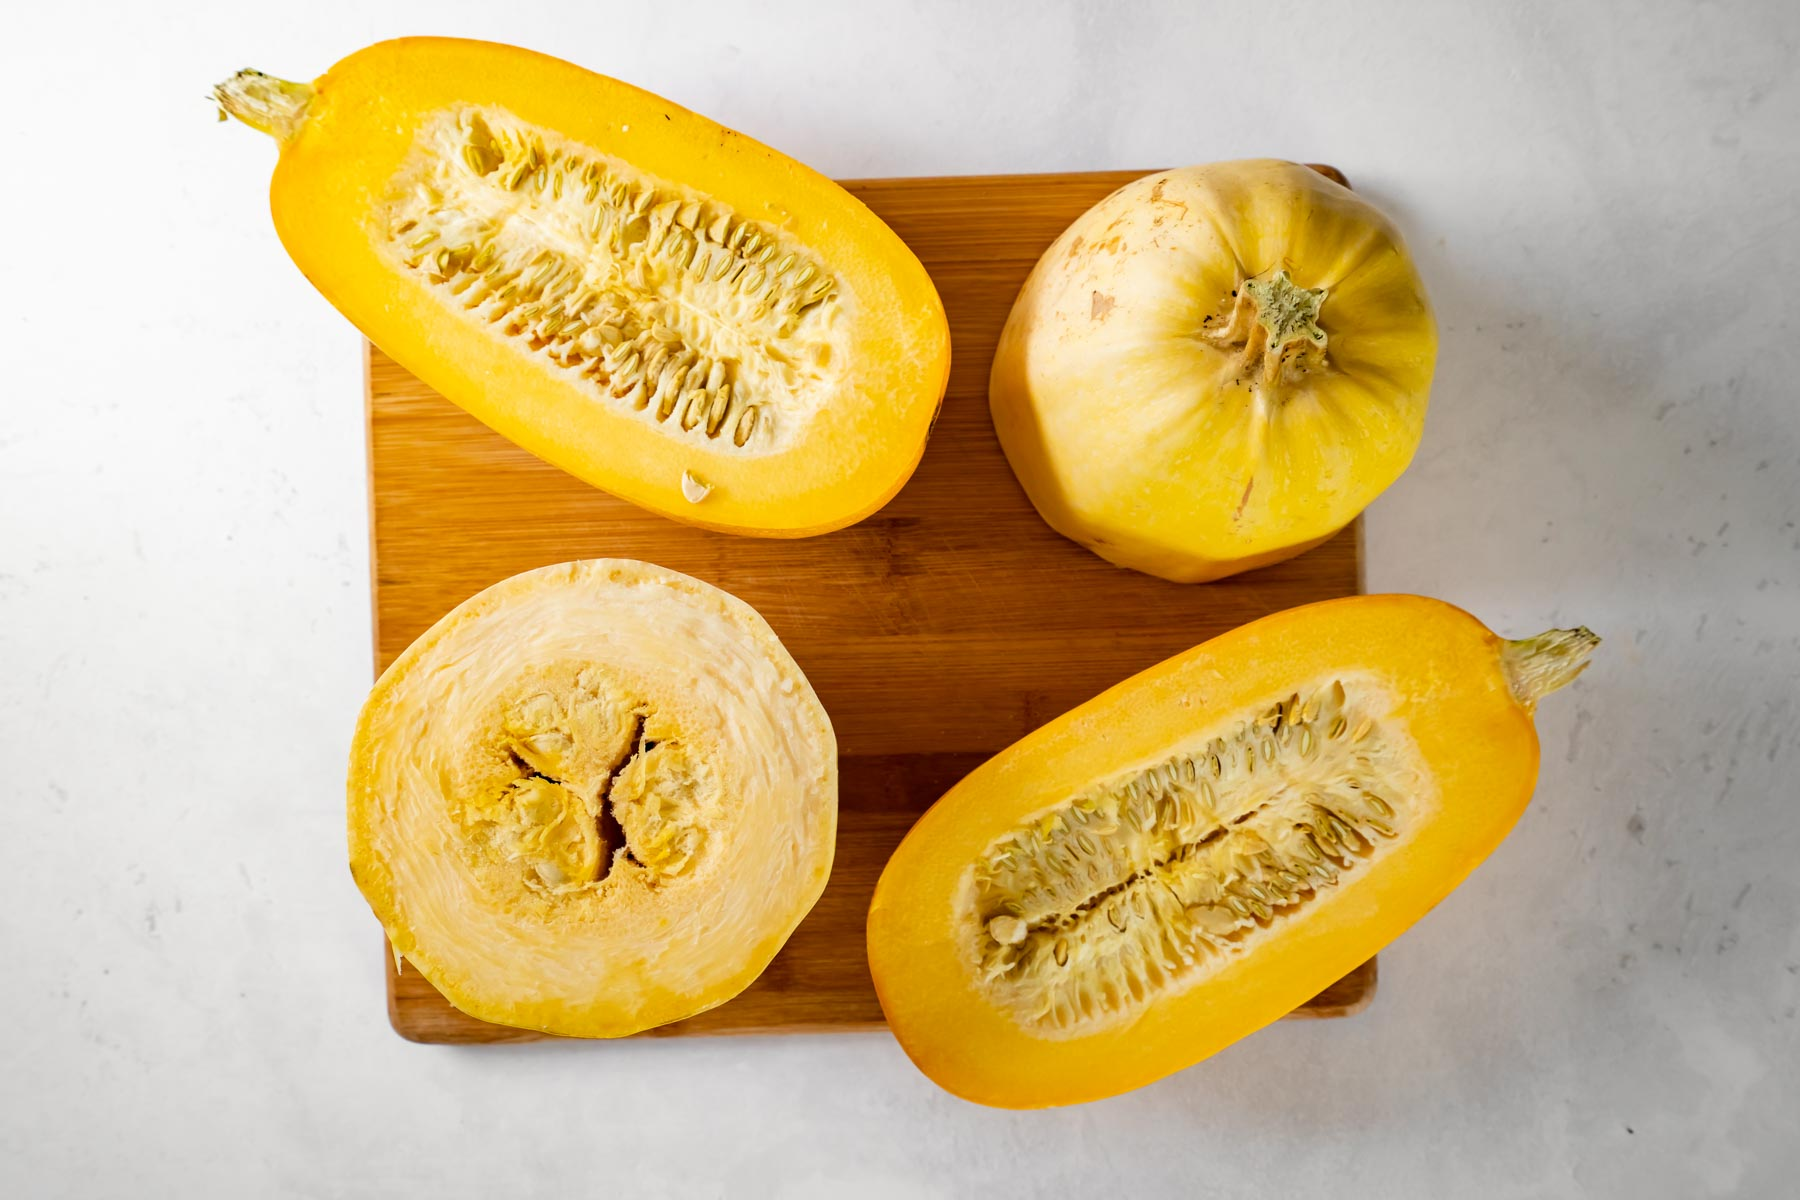 one spaghetti squash cut in half lengthwise and another cut in half crosswise